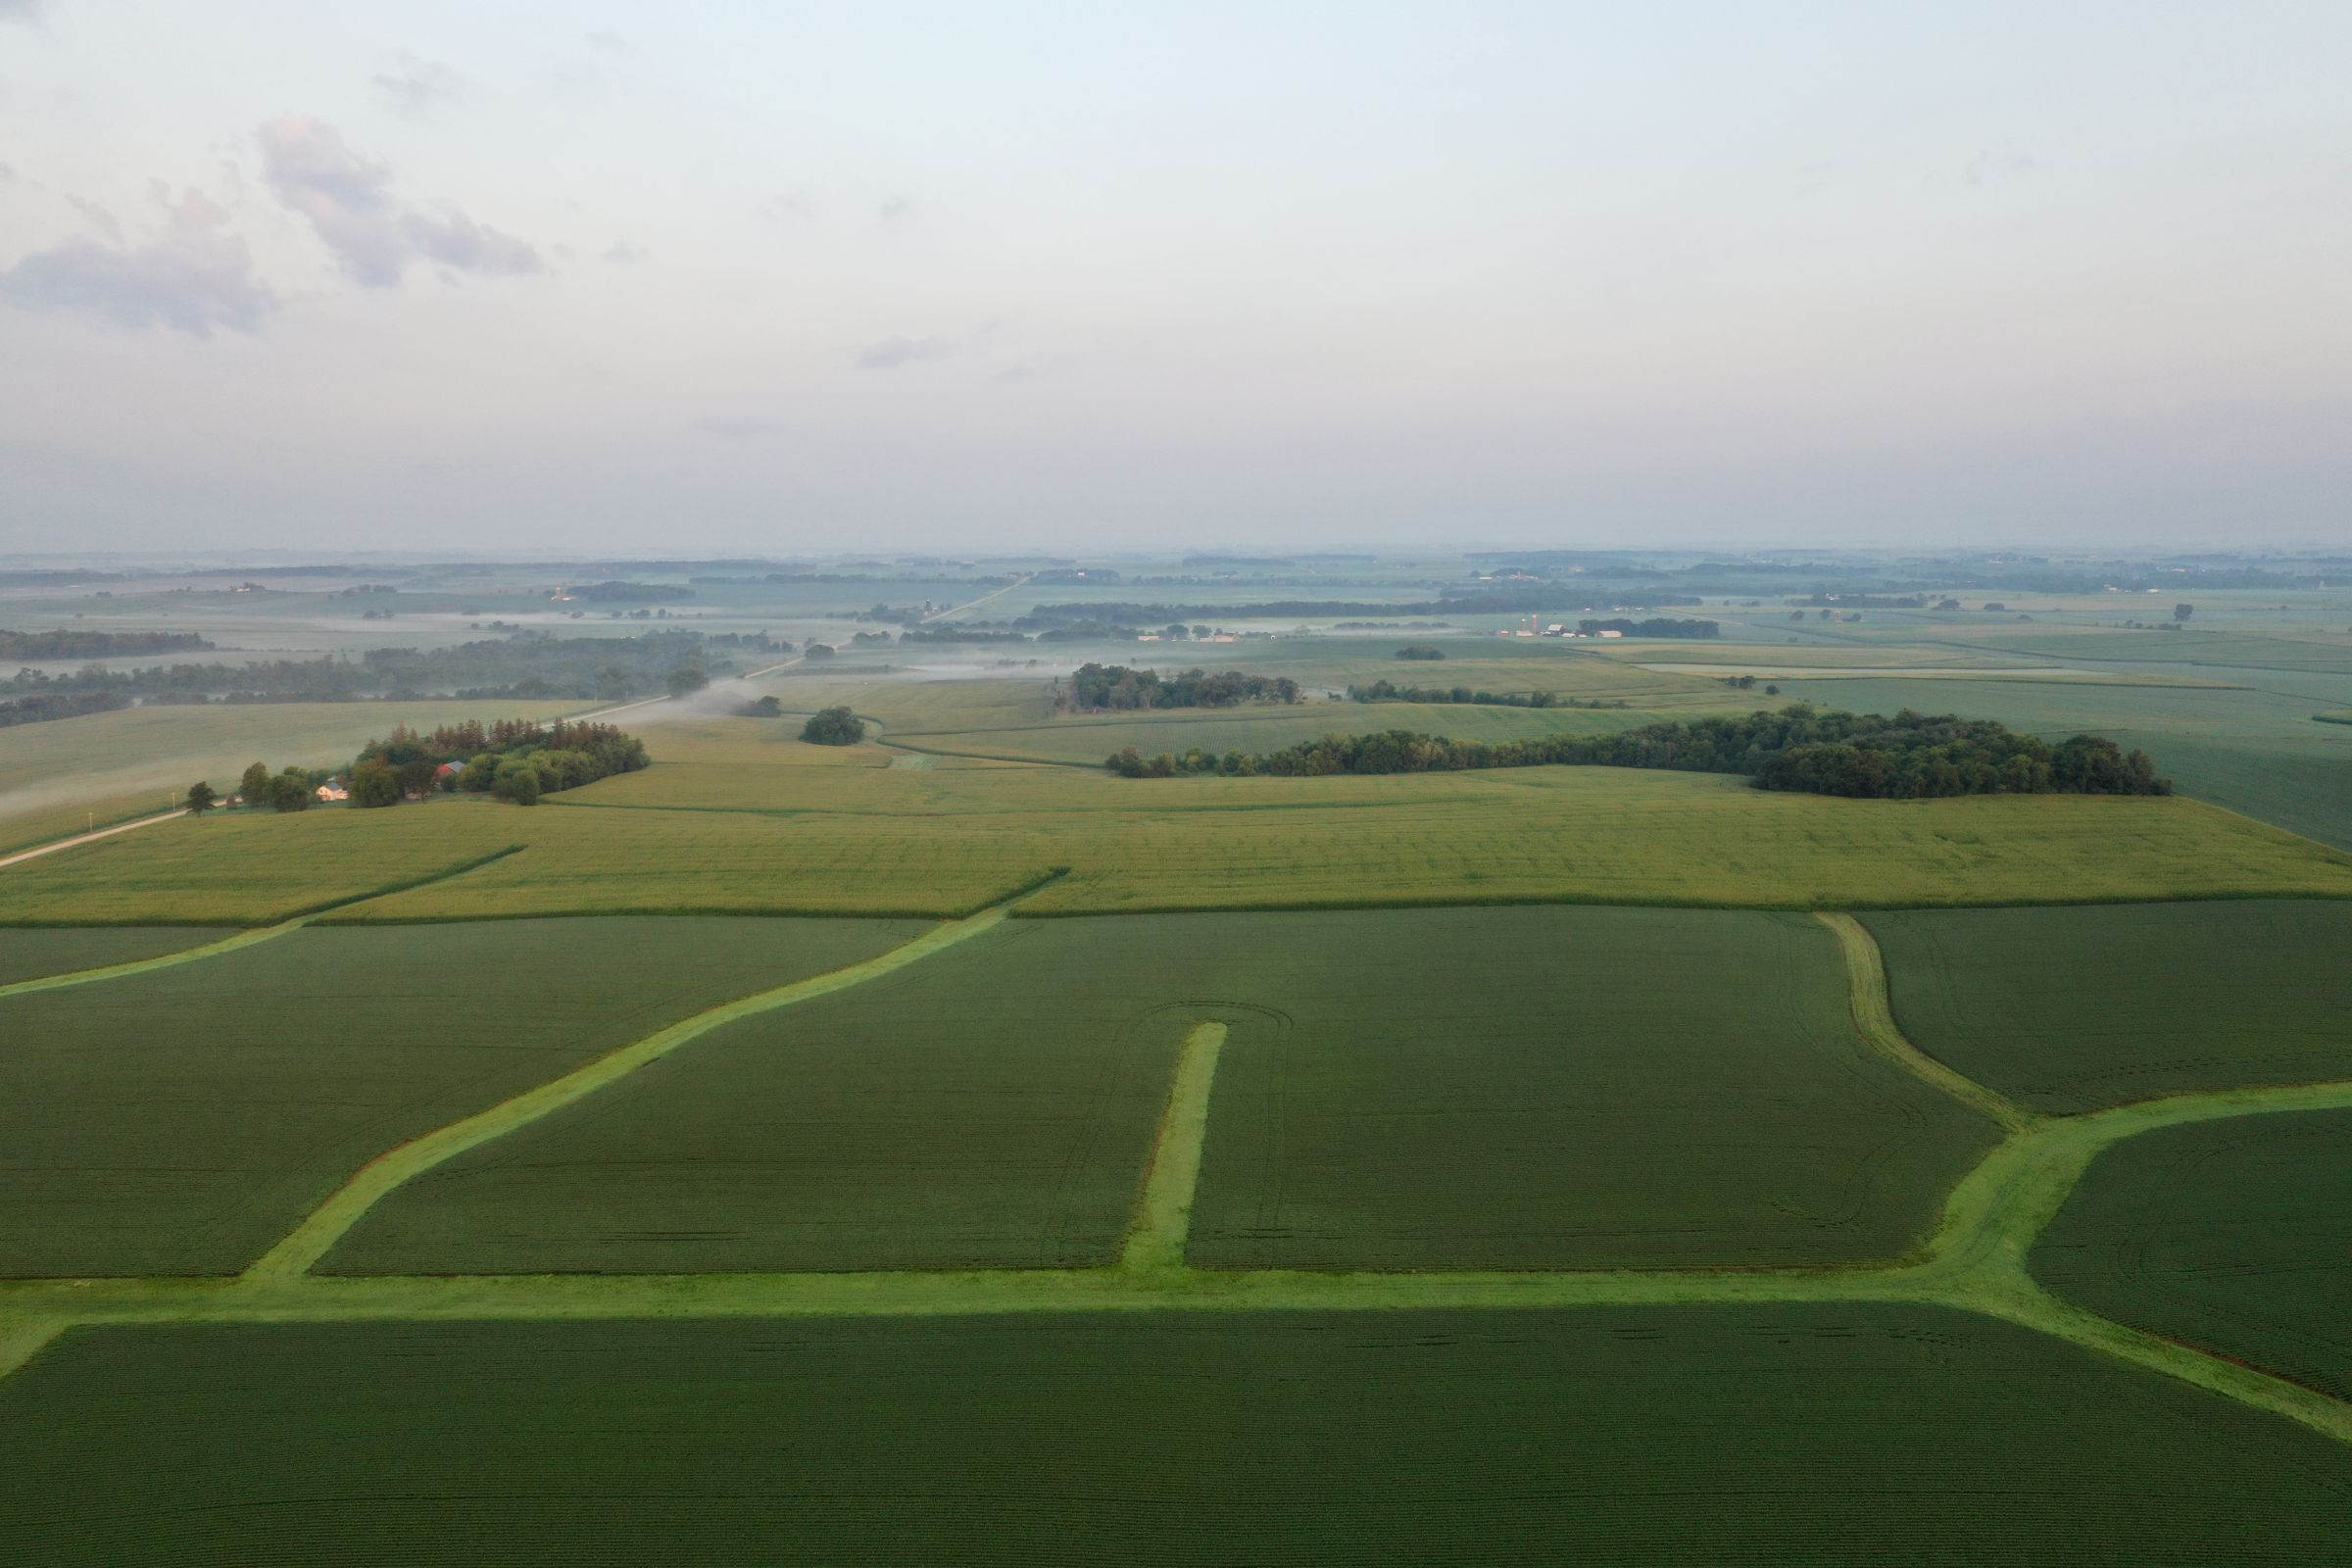 auctions-land-fayette-county-iowa-233-acres-listing-number-15645-1-2021-07-21-143929.JPG